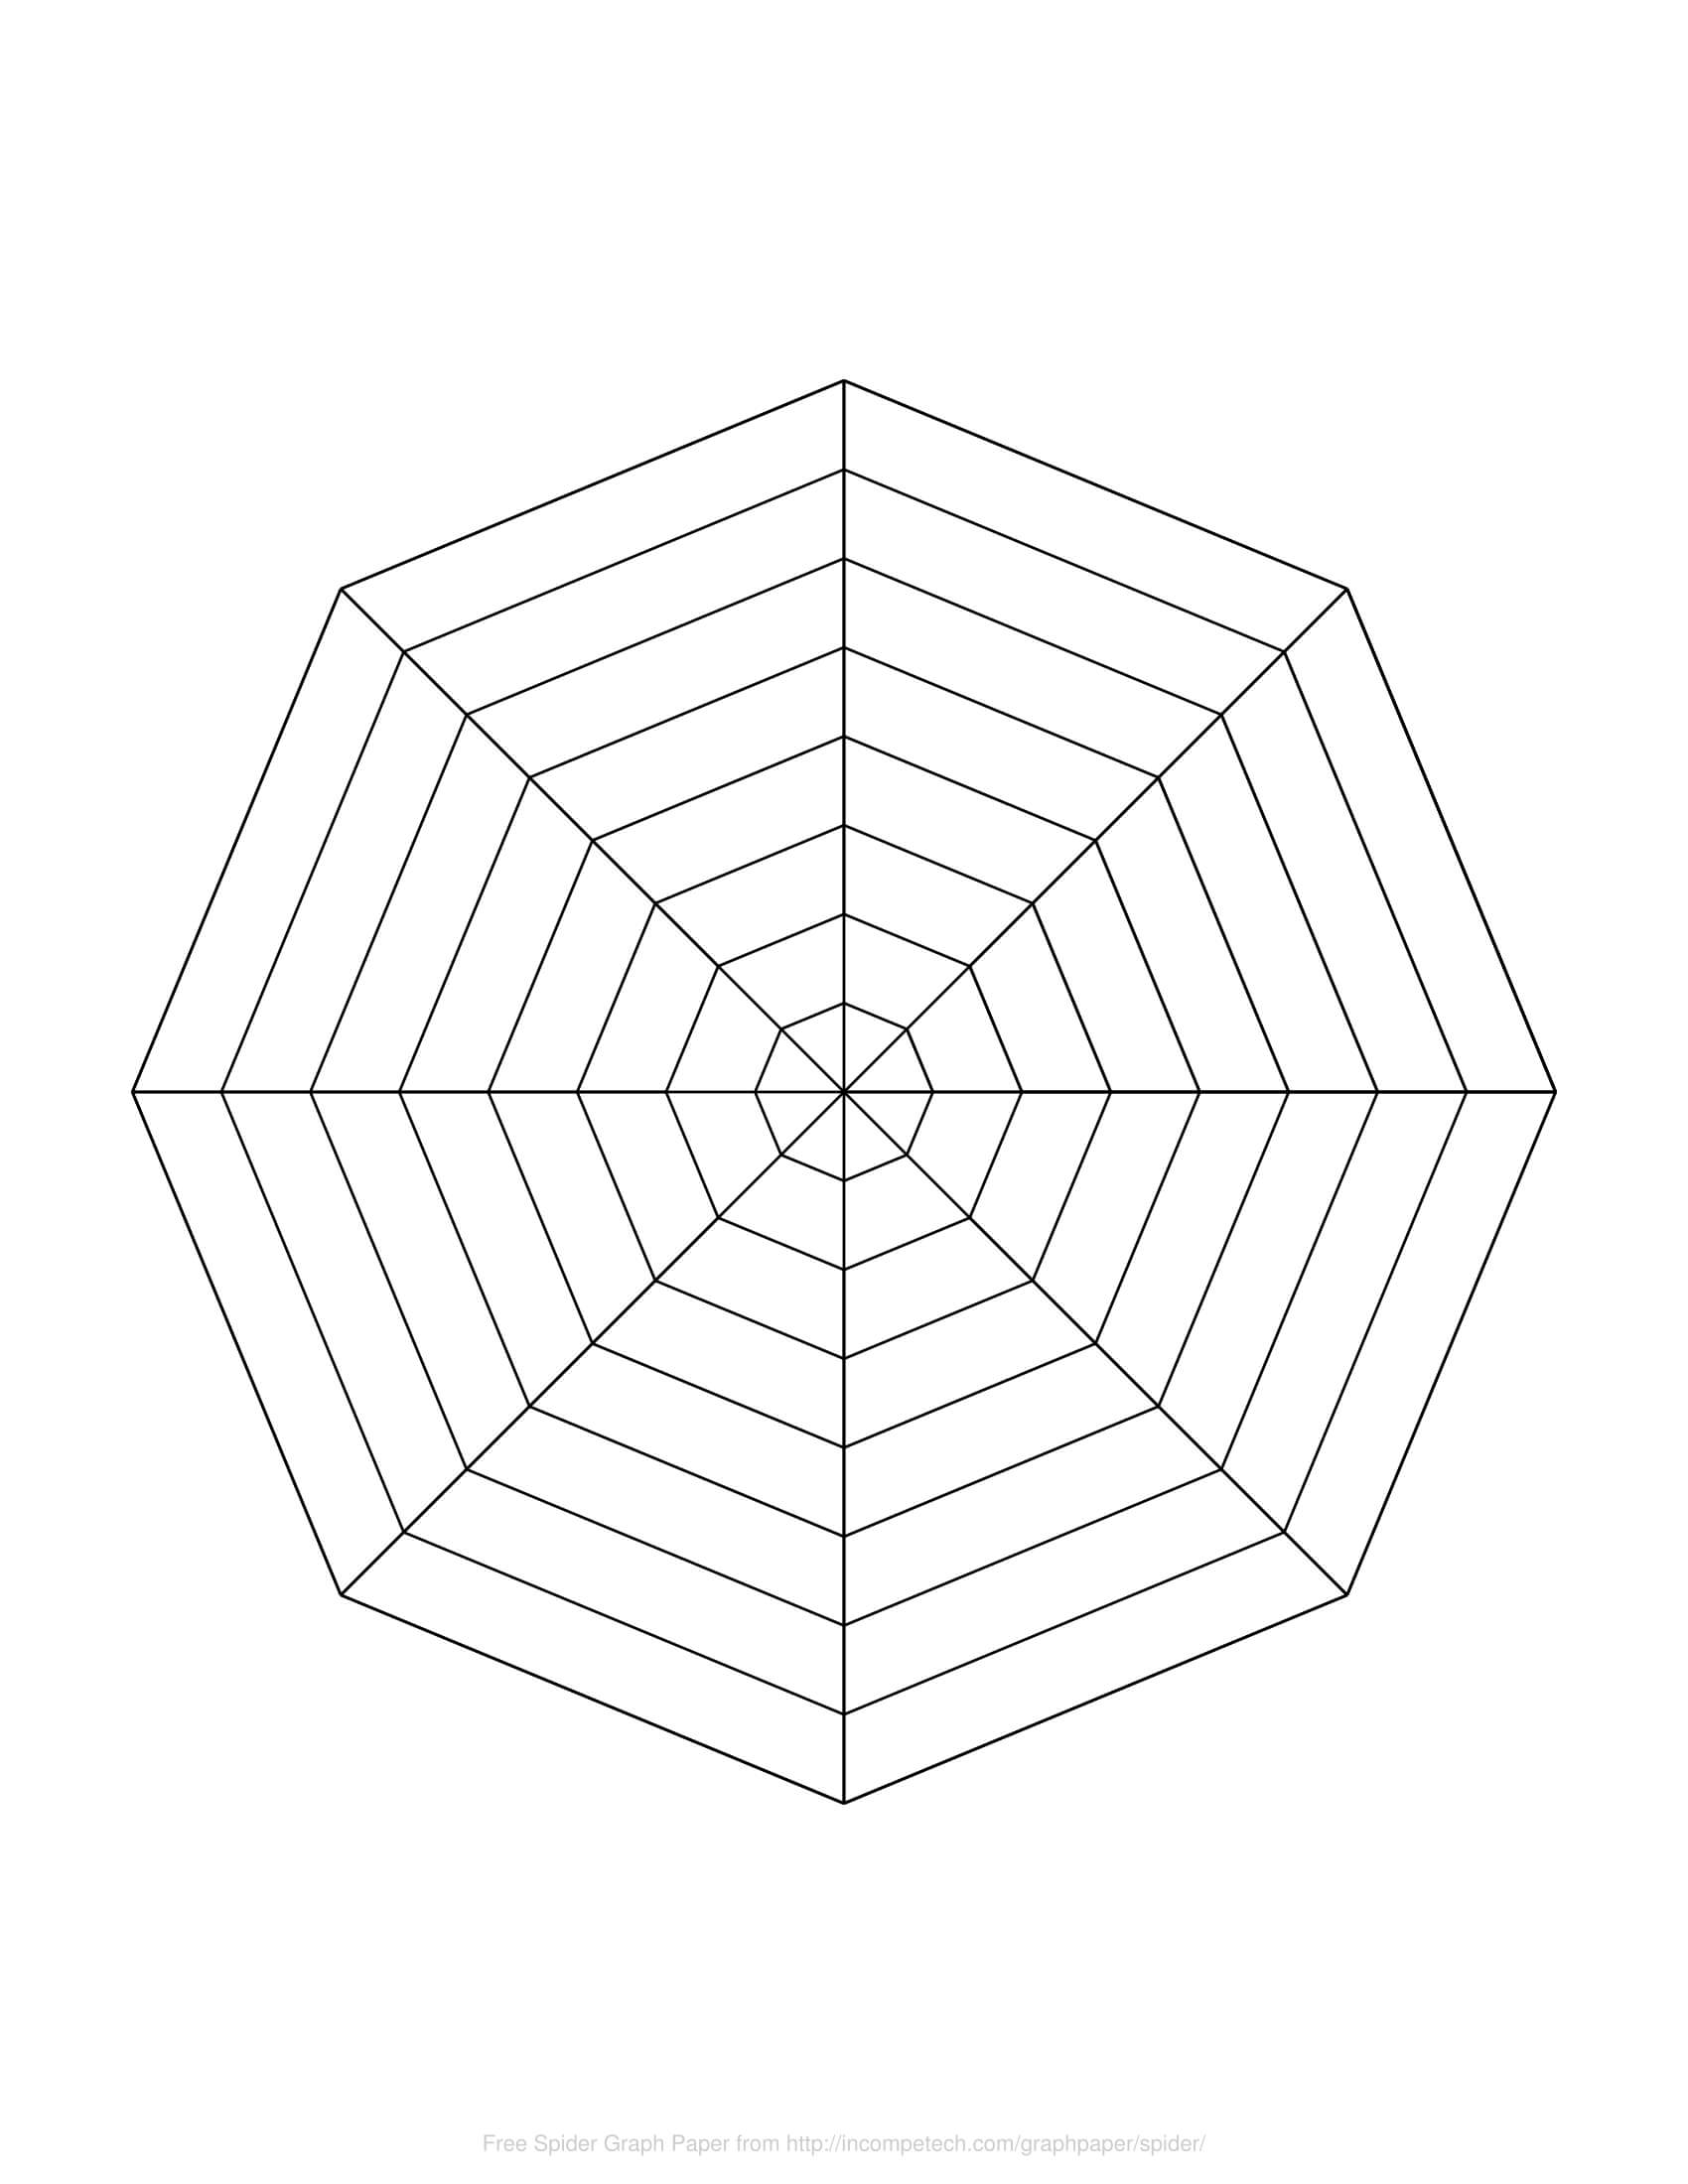 Blank Spider Diagram Chart - User Guide Of Wiring Diagram For Blank Radar Chart Template